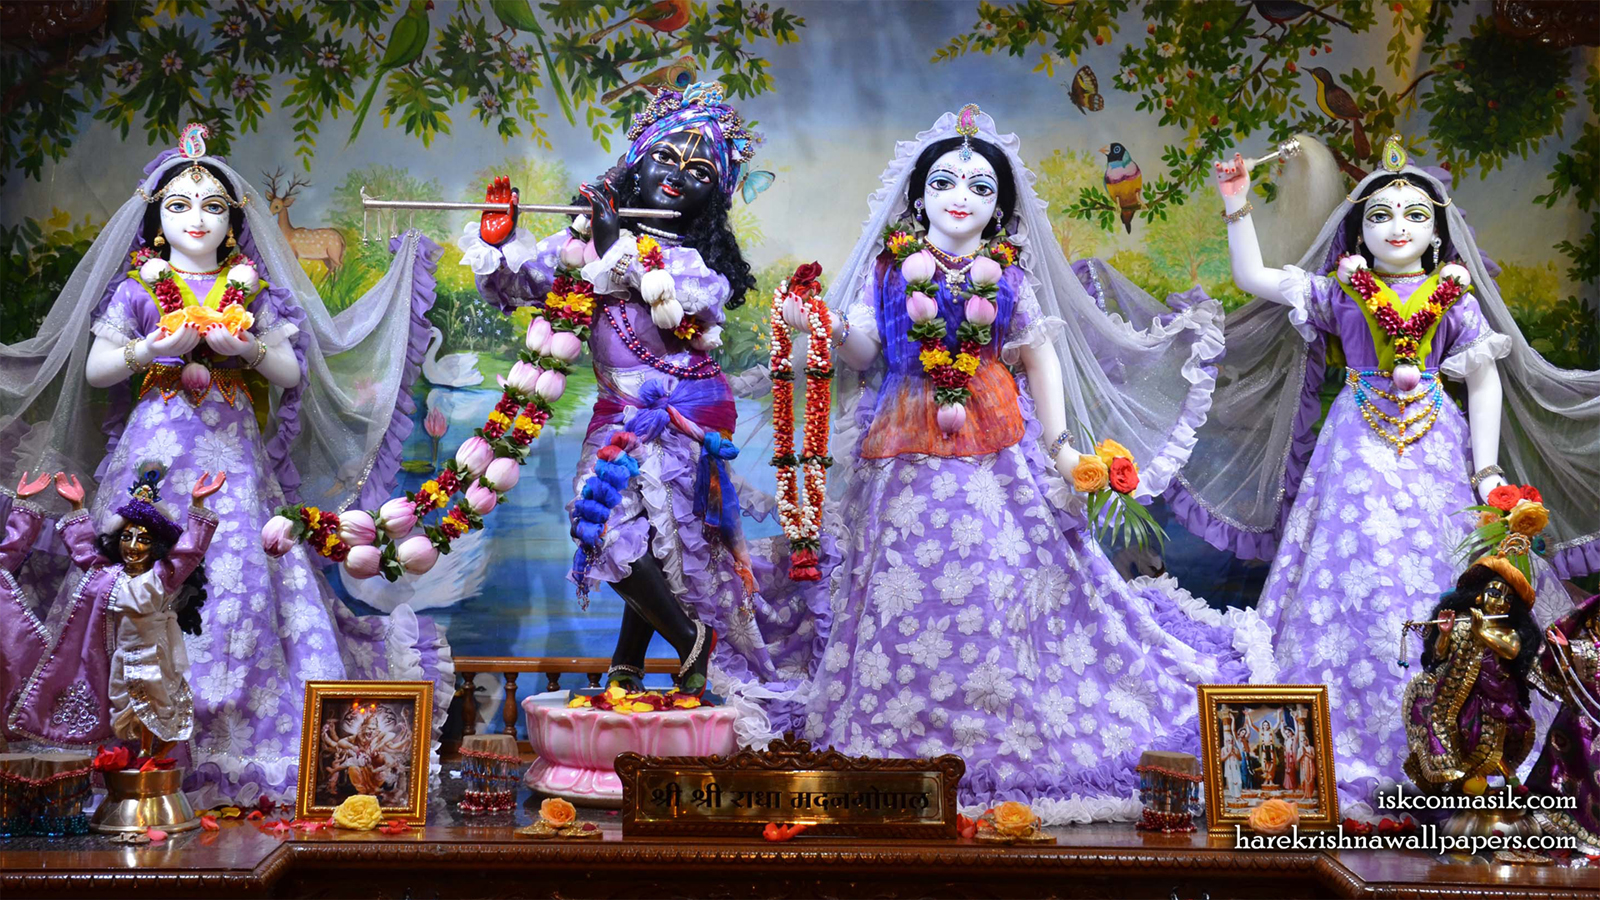 Sri Sri Radha Madan Gopal Lalita Vishakha Wallpaper (002) Size 1600x900 Download